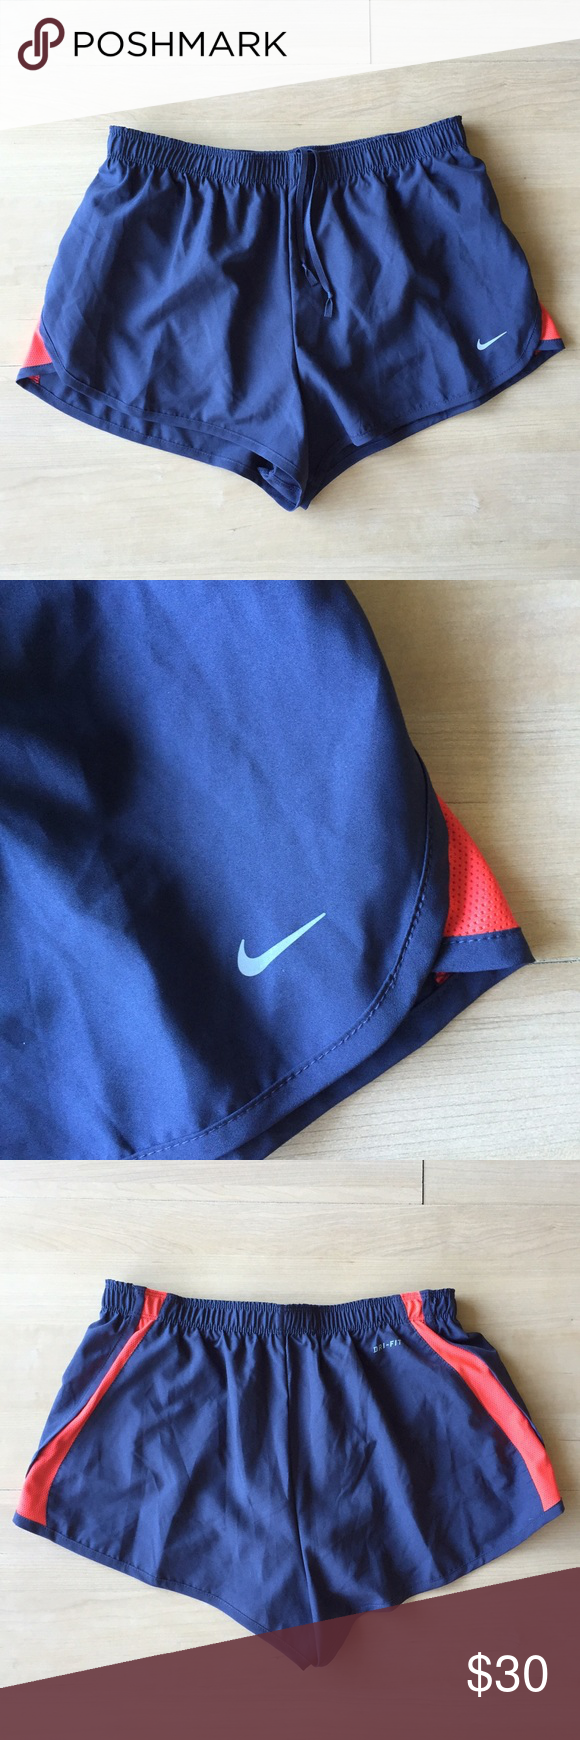 Nike Running Shorts | Navy Red | M Used couple of times. Non-stretchy navy material with red mesh insets, with navy underwear liner. Drawstring ties in front, open pocket right back on the liner. 100% polyester. Approximately 11 inch length at middle front of thigh. Machine wash cold, tumble dry low. Smoke-free/pet free home, no trades. Nike Shorts